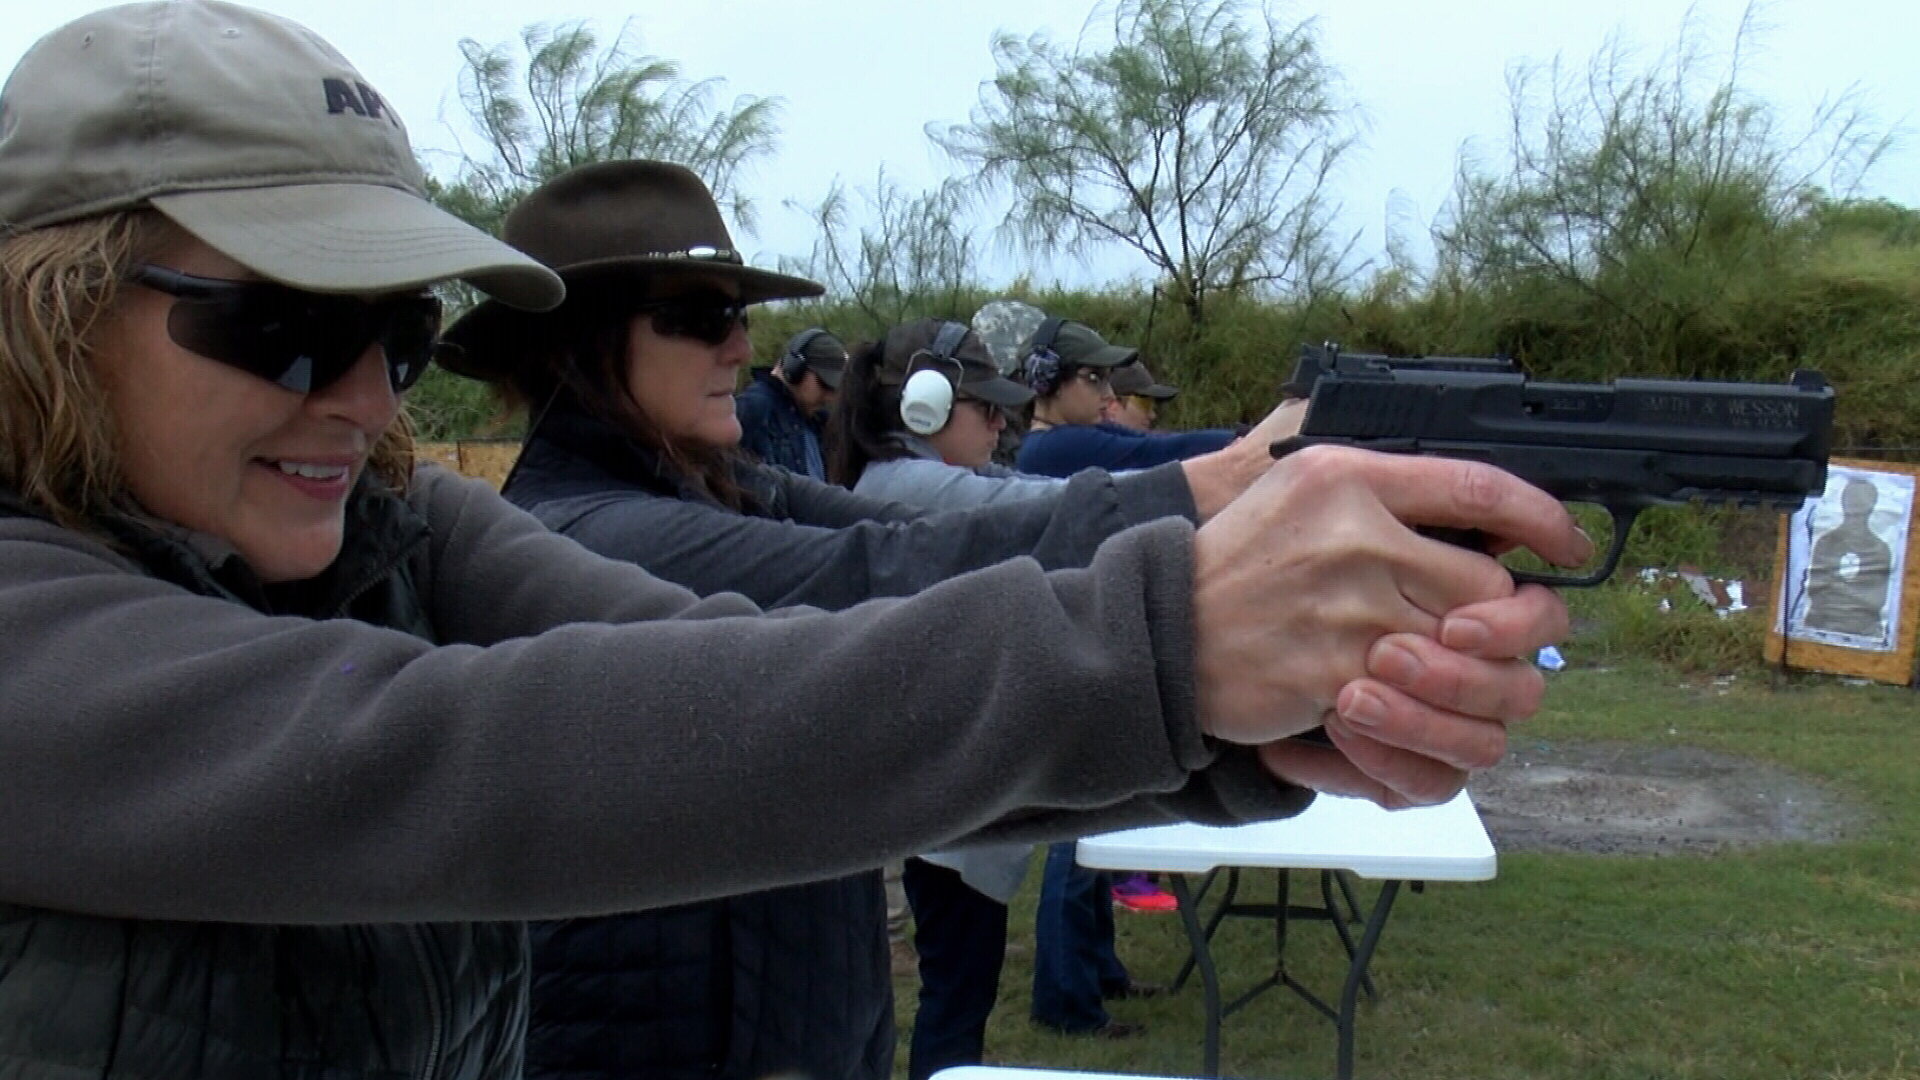 Title IV-D Court Judge Susan Barclay and 347th District Court Judge Missy Medary take aim at a target during a concealed carry class Sunday. The judges were part of a group of a dozen female courthouse employees taking the class.